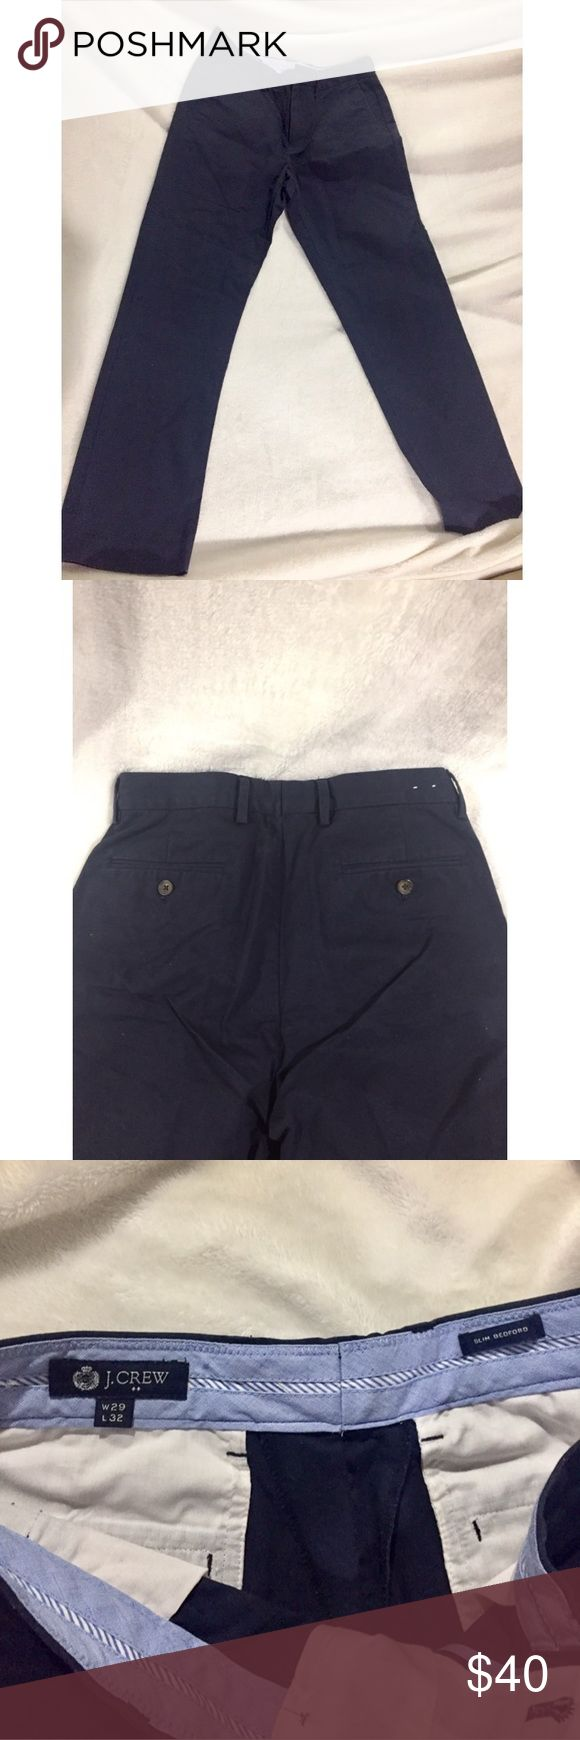 Navy Blue Men's J. Crew Chino Pants Very good quality and condition. They just don't fit. Men's Chinos. Slim.  OFFERS WELCOME J. Crew Pants Chinos & Khakis